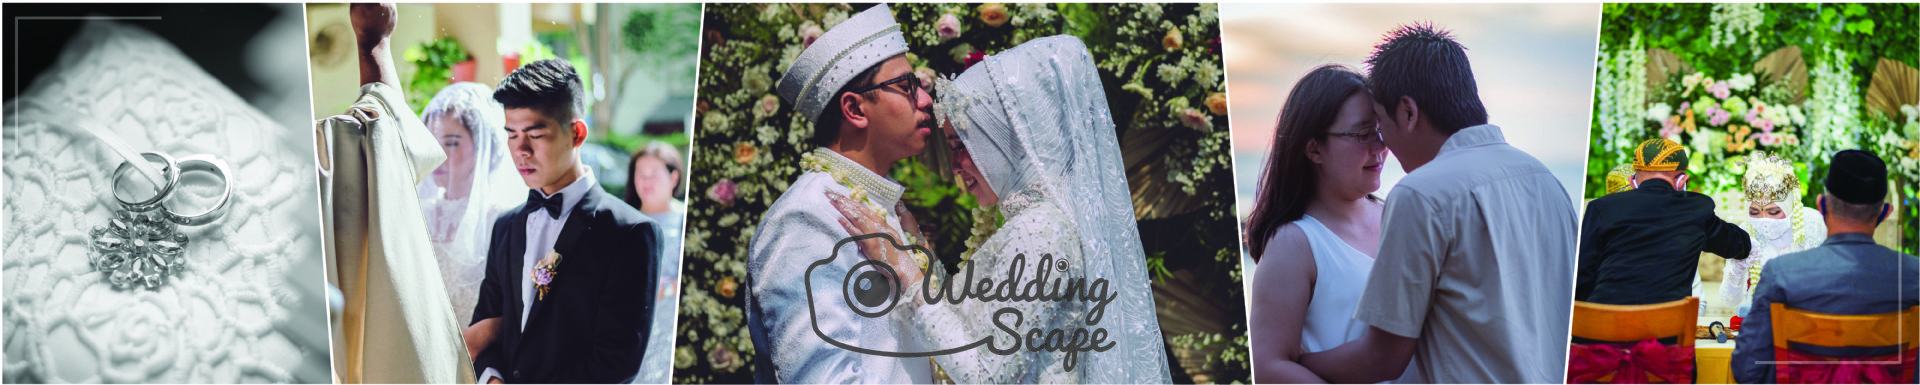 weddingscape